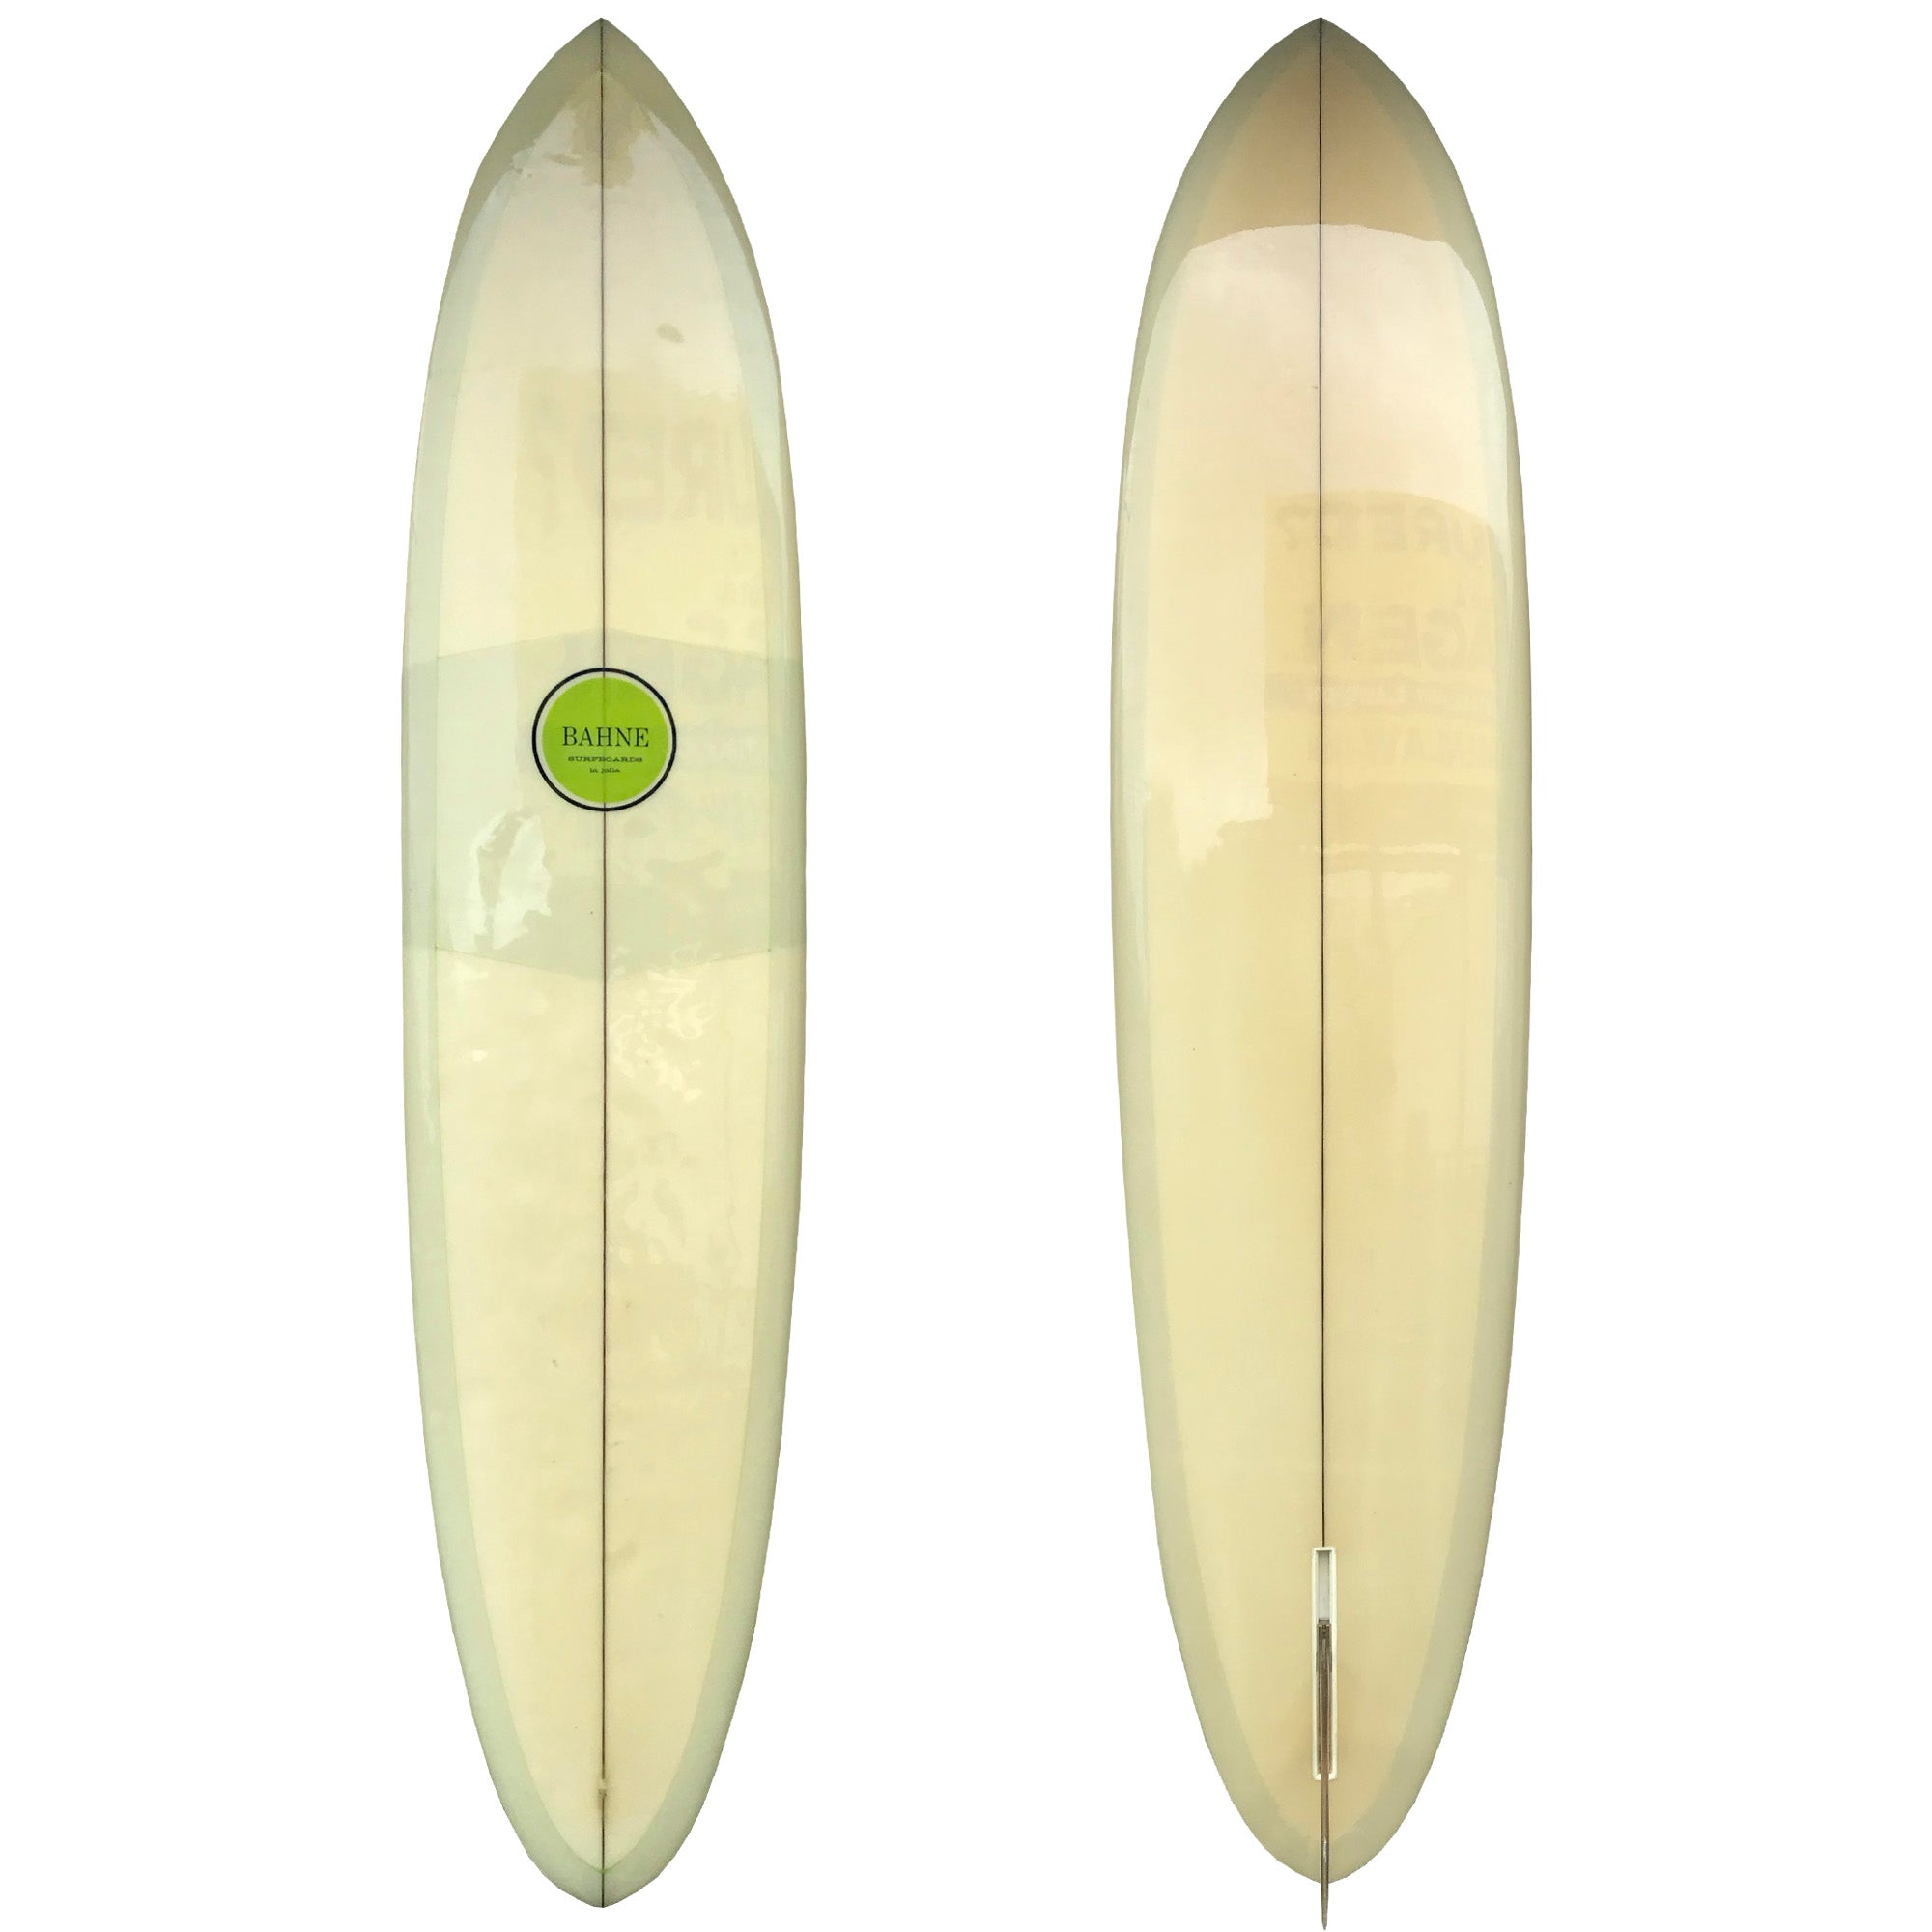 Bahne 8'6 Collector's Surfboard